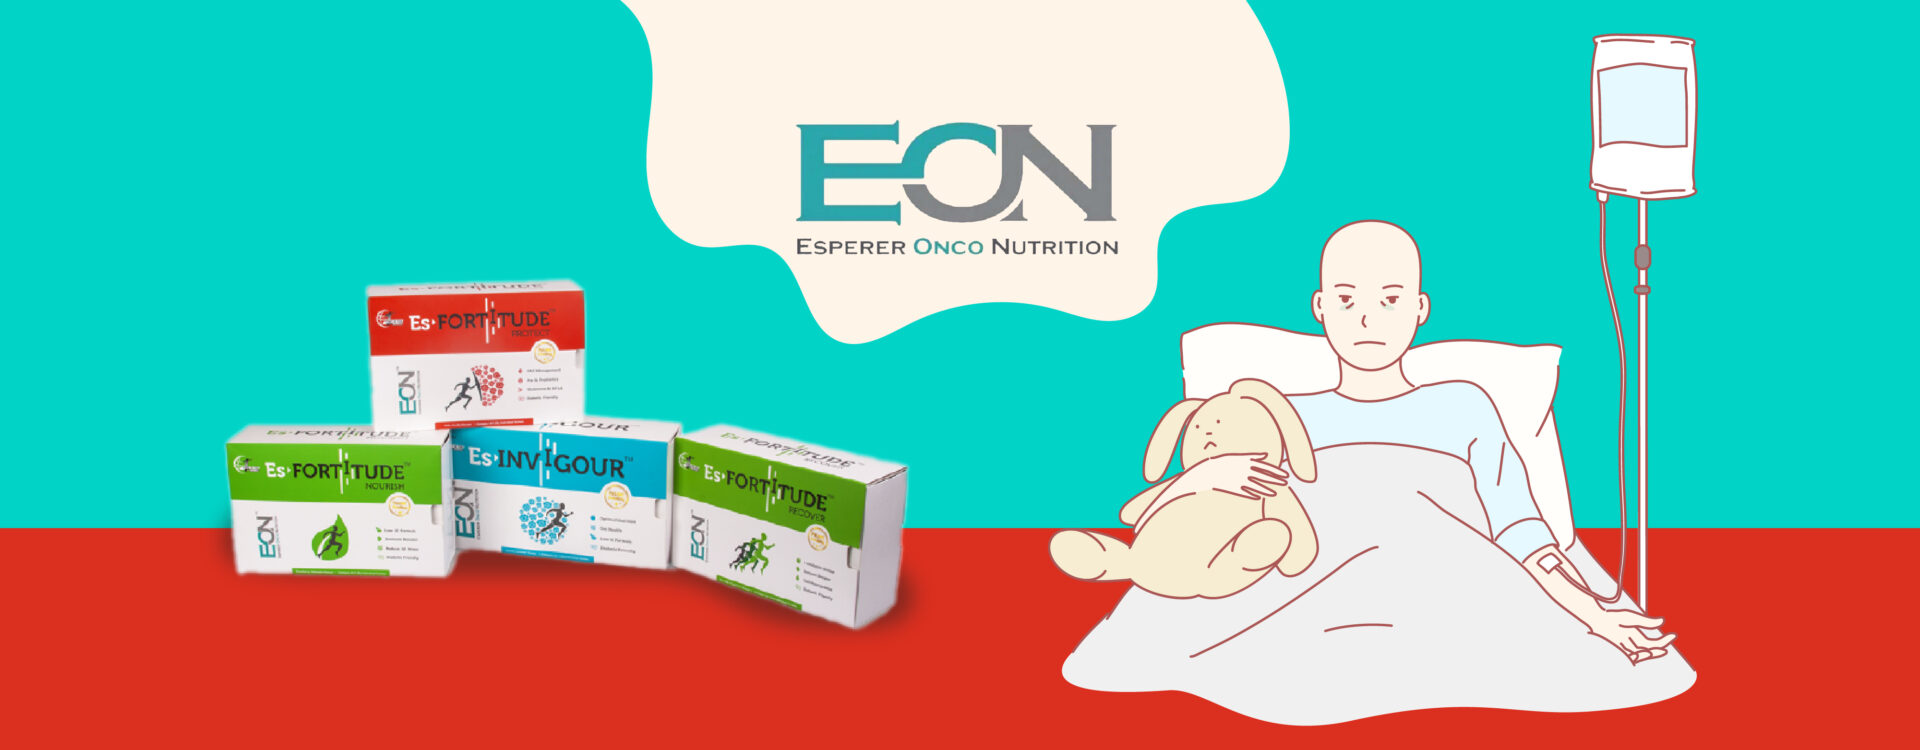 Esperer Onco Nutrition is bringing innovation in cancer treatment through its nutritional therapy.